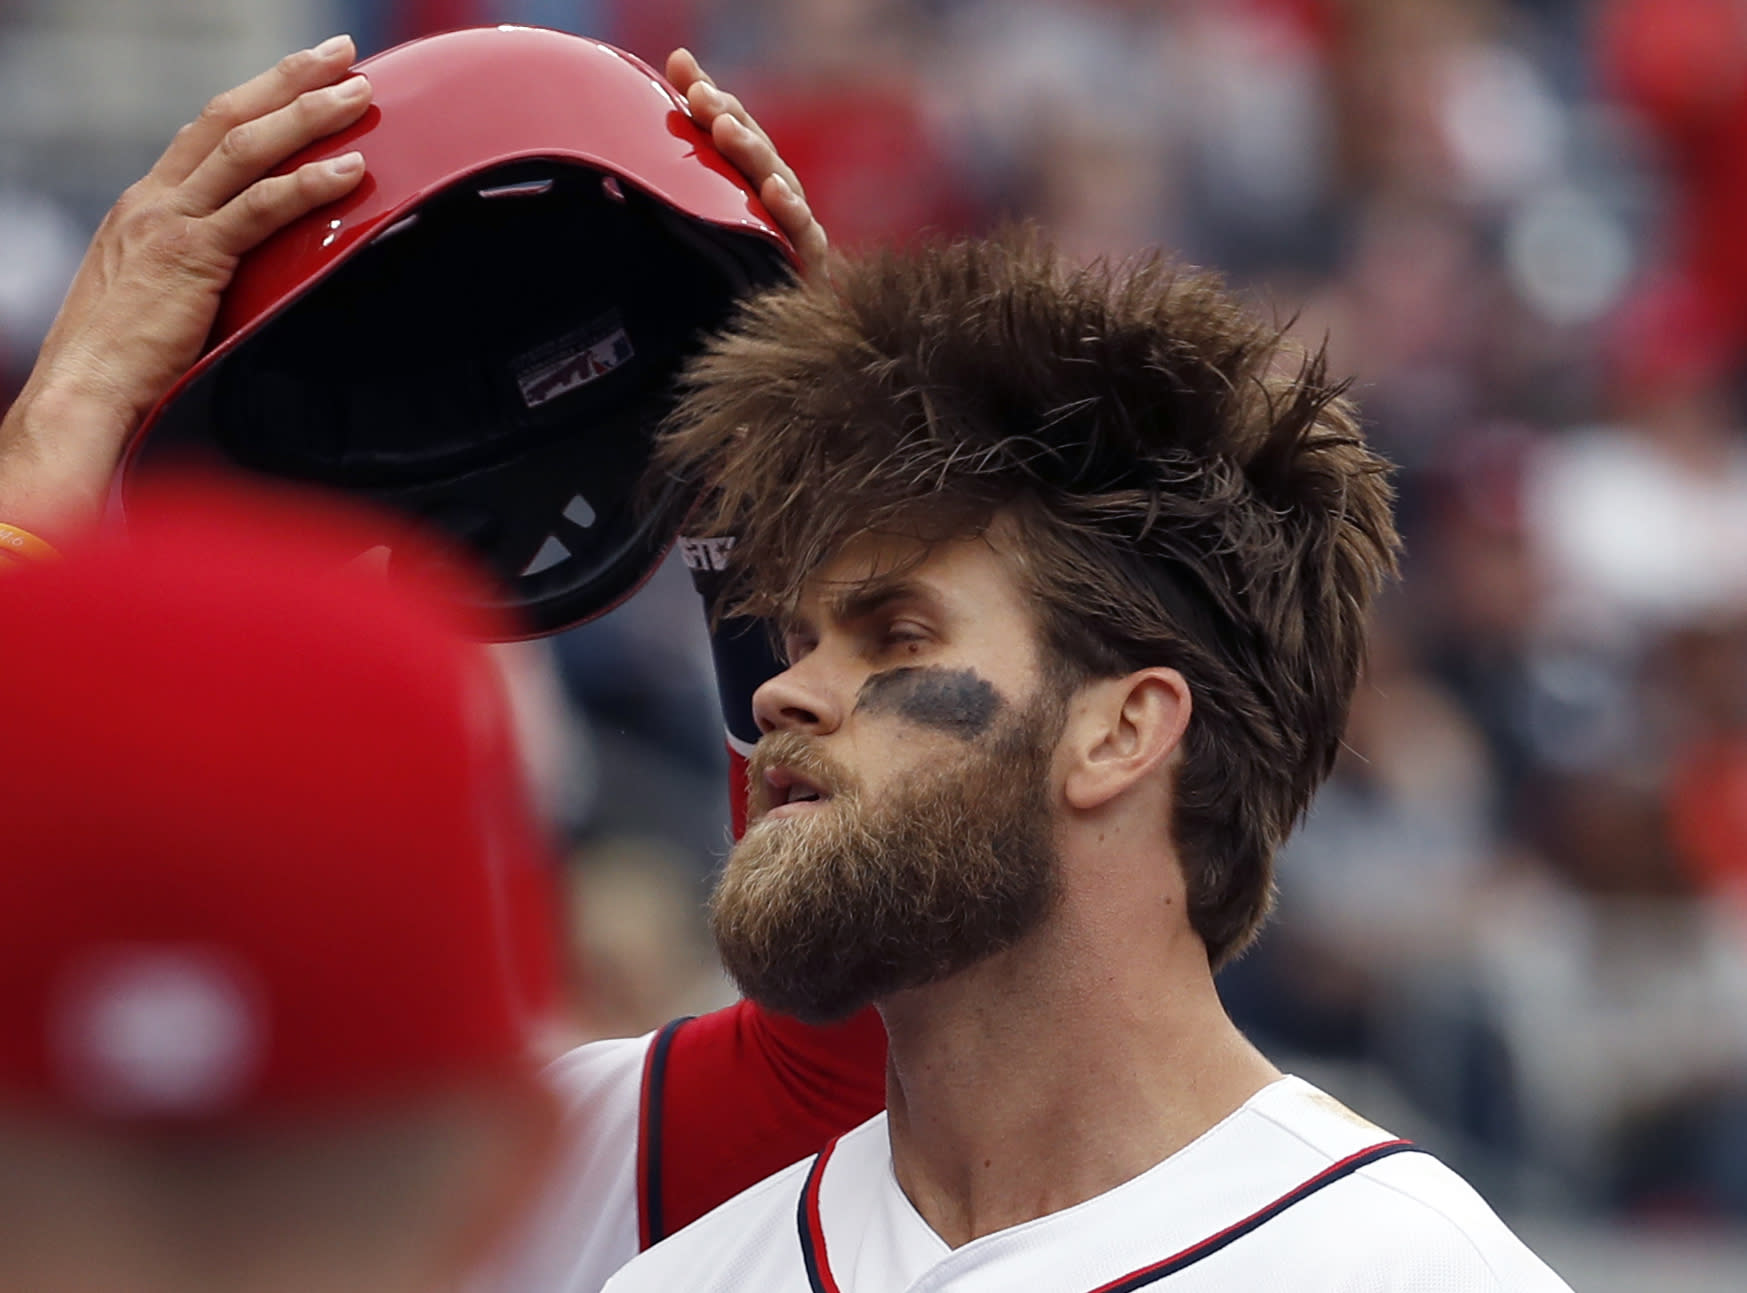 Bryce harper appears to be rocking cornrows now for some for Bryce harper mvp shirt